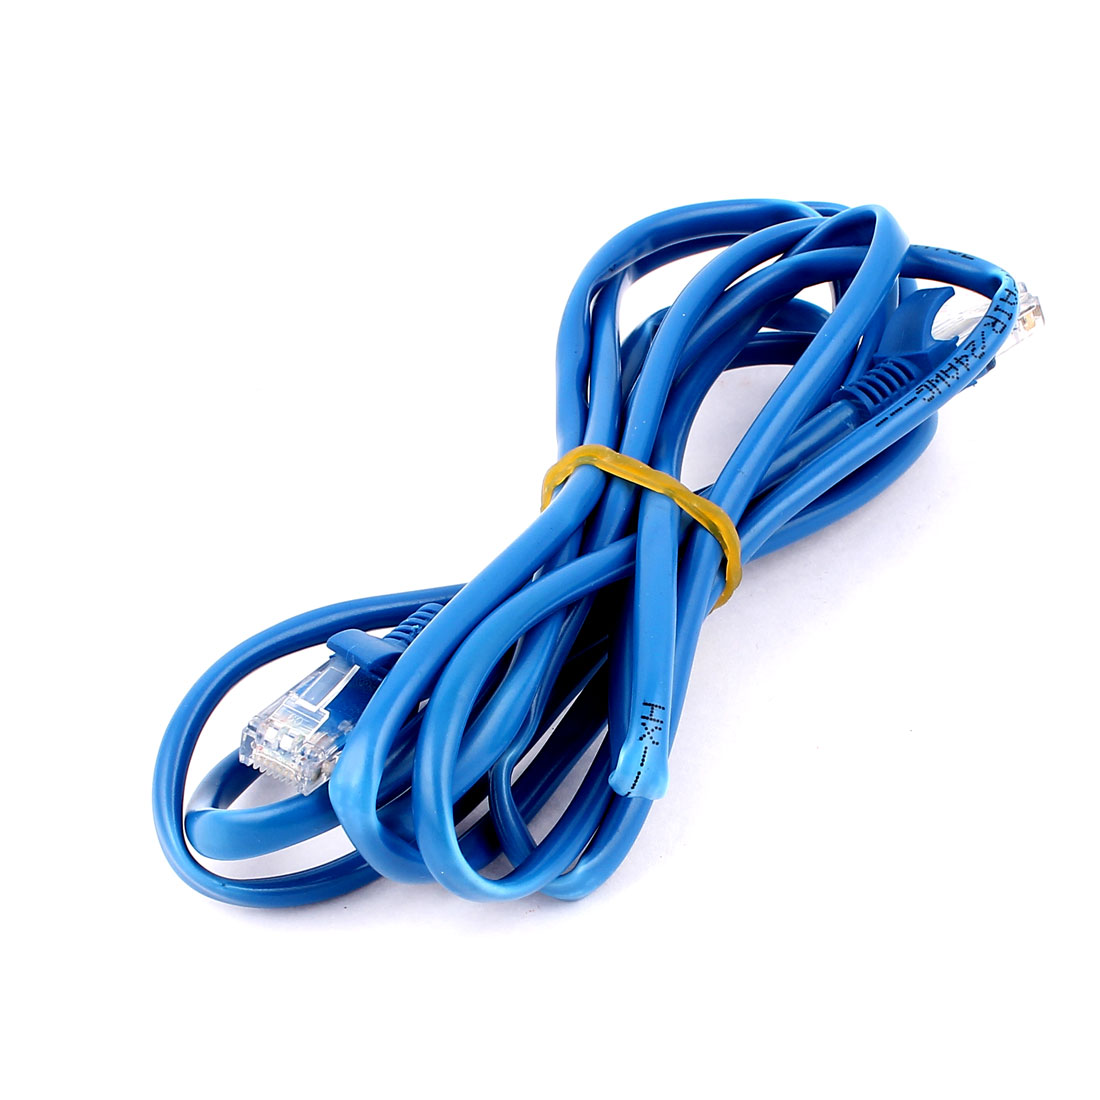 2.5M 8Ft Long CAT 5E RJ 45 8P8C Modular Ethernet Router Switch LAN Network Cable Blue